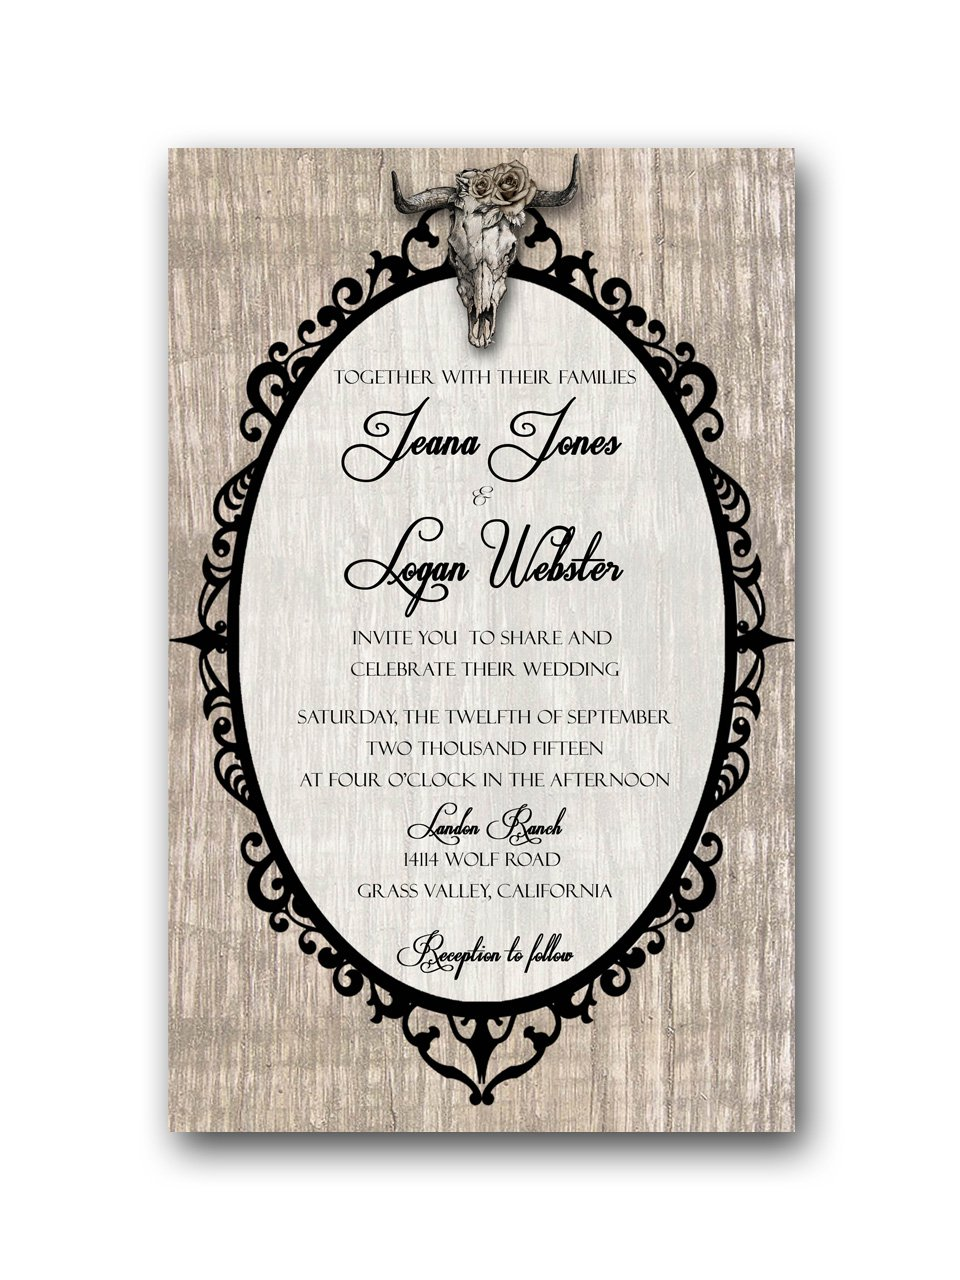 Deer skull rustic wedding invitation rsvp for Wedding invitations 50 cents each